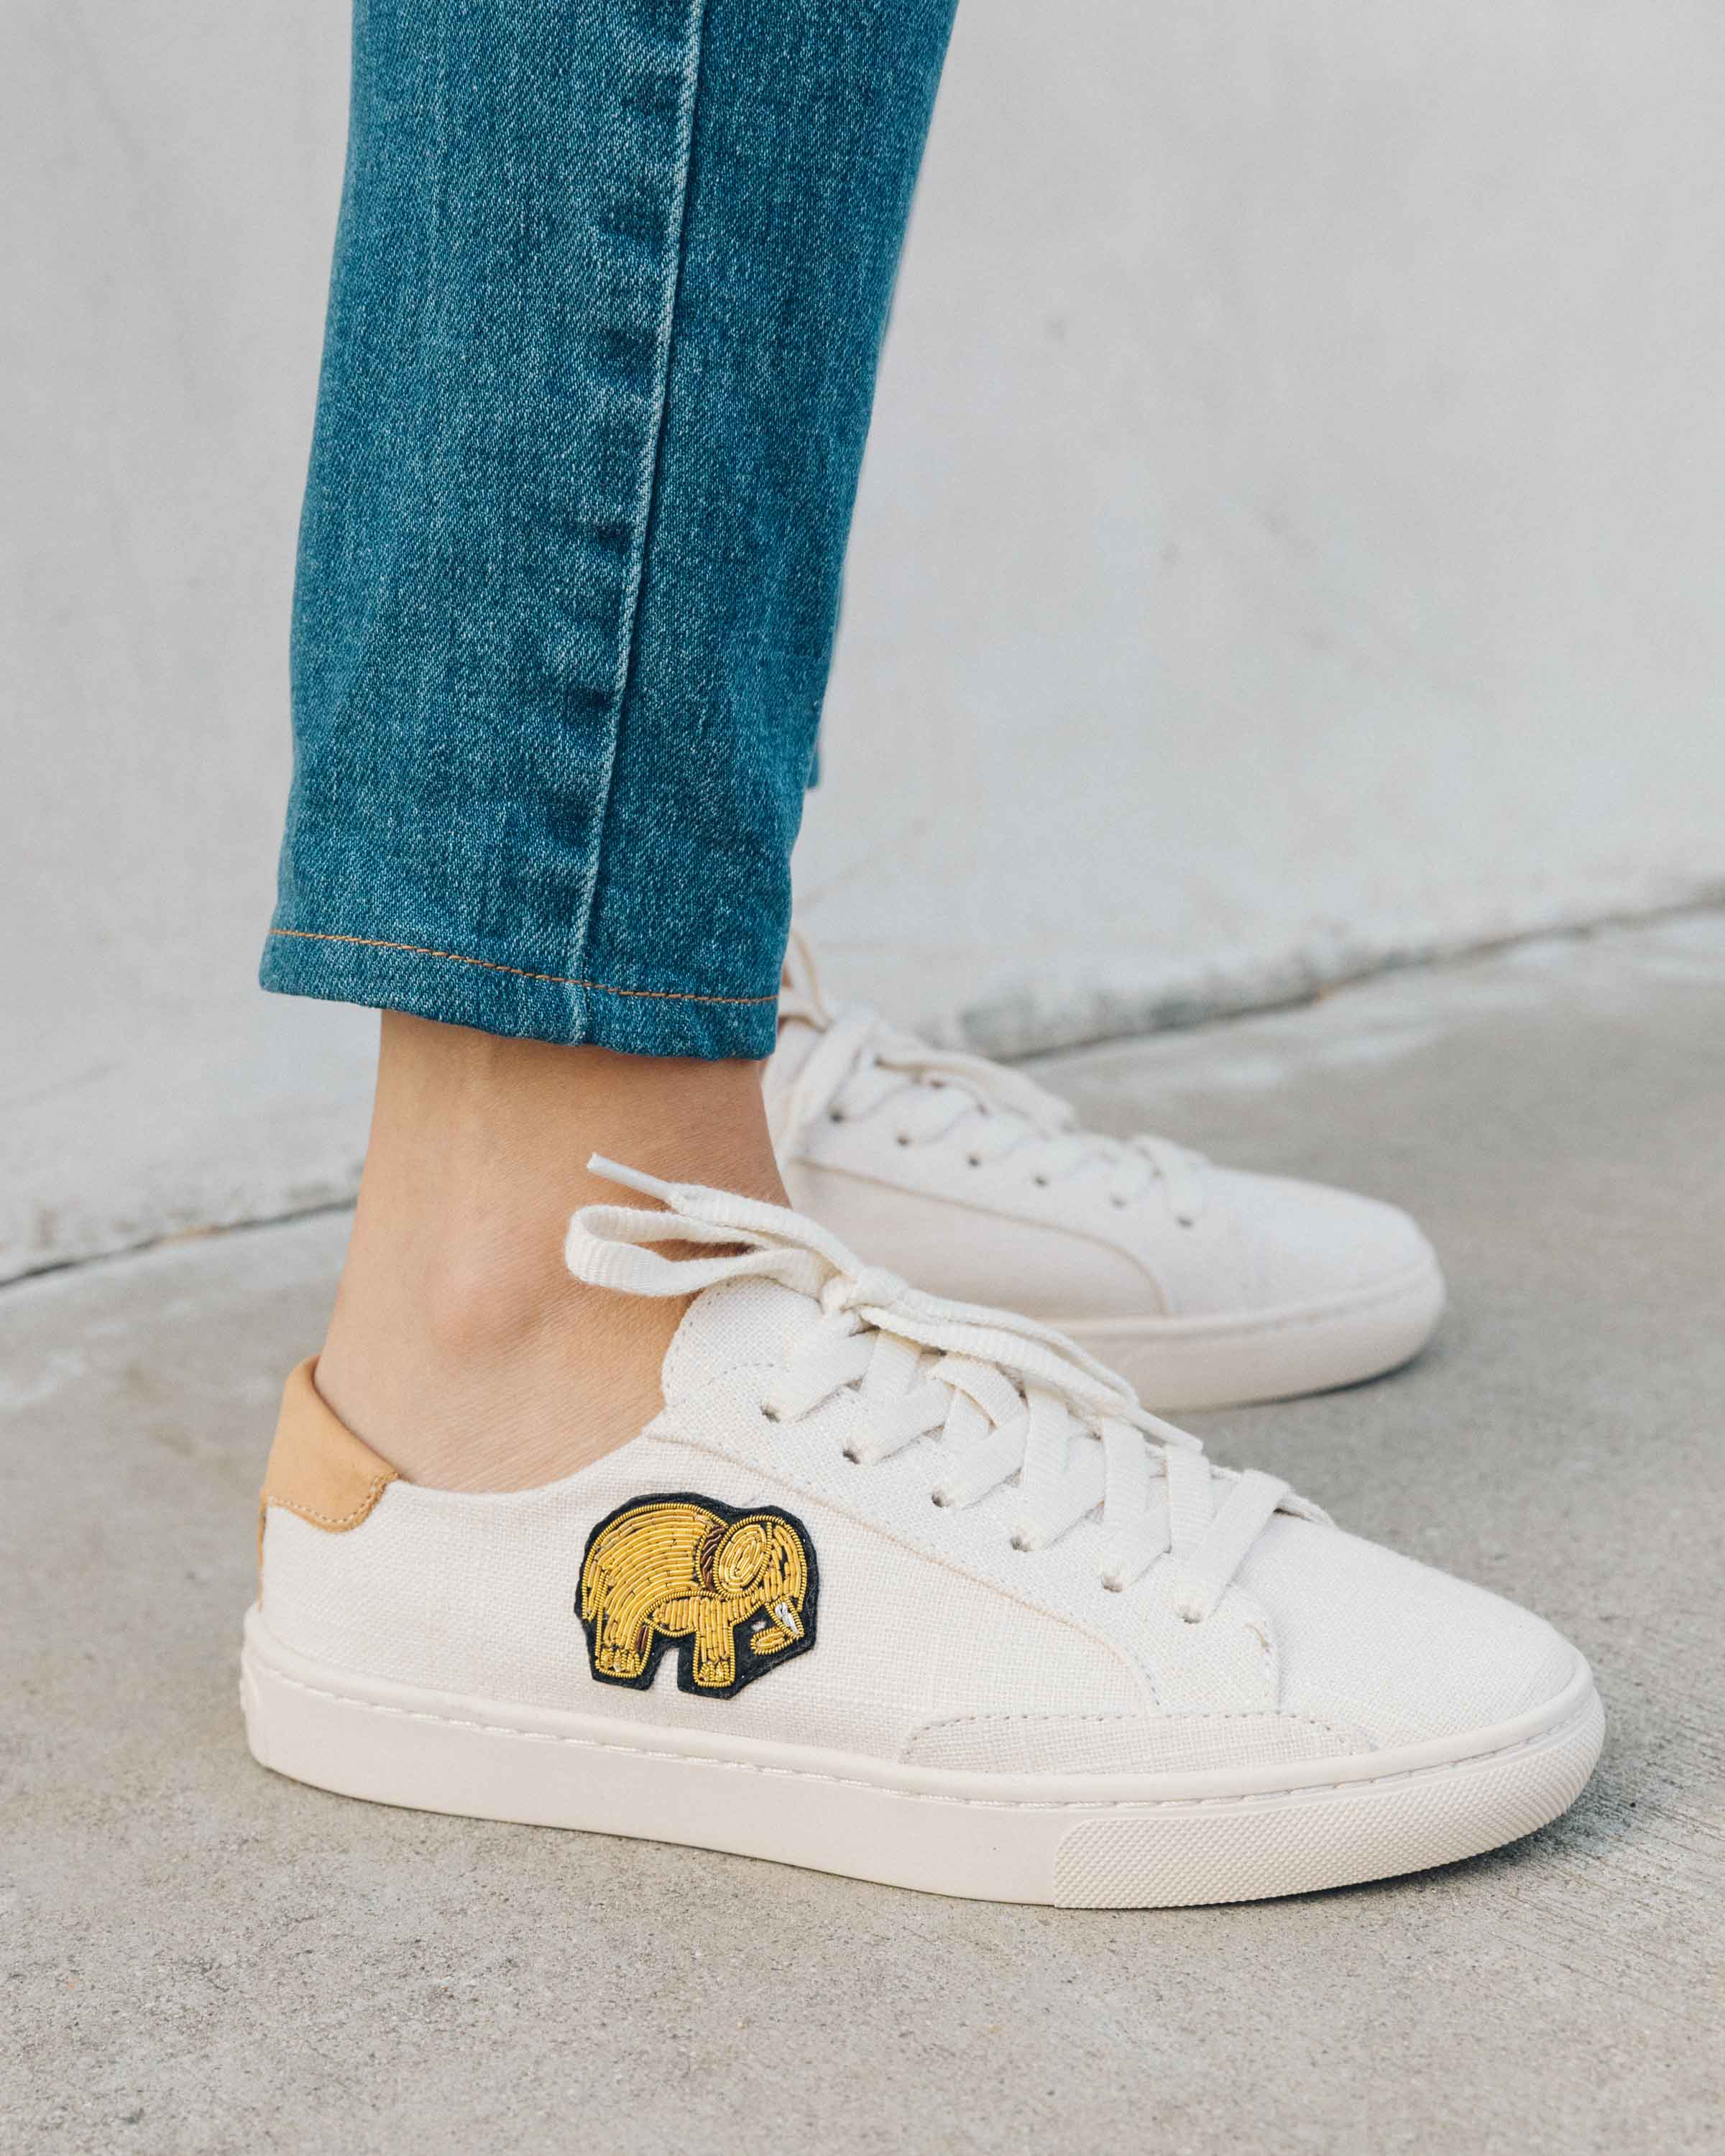 Introducing your new sneaker soulmate